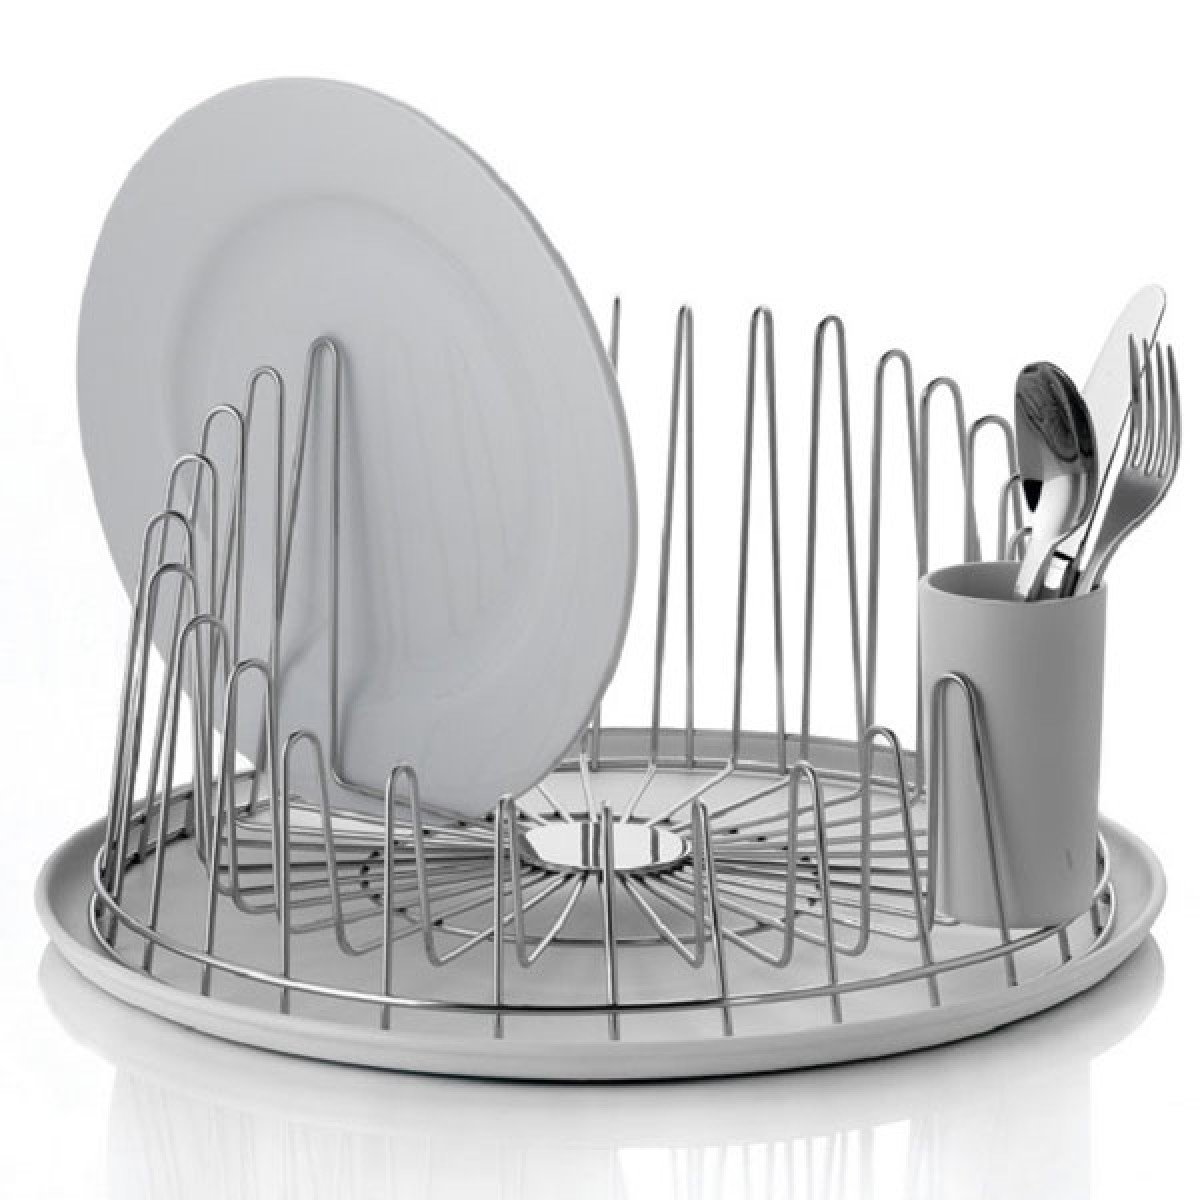 Dish & Cutlery Drainers - Red Candy